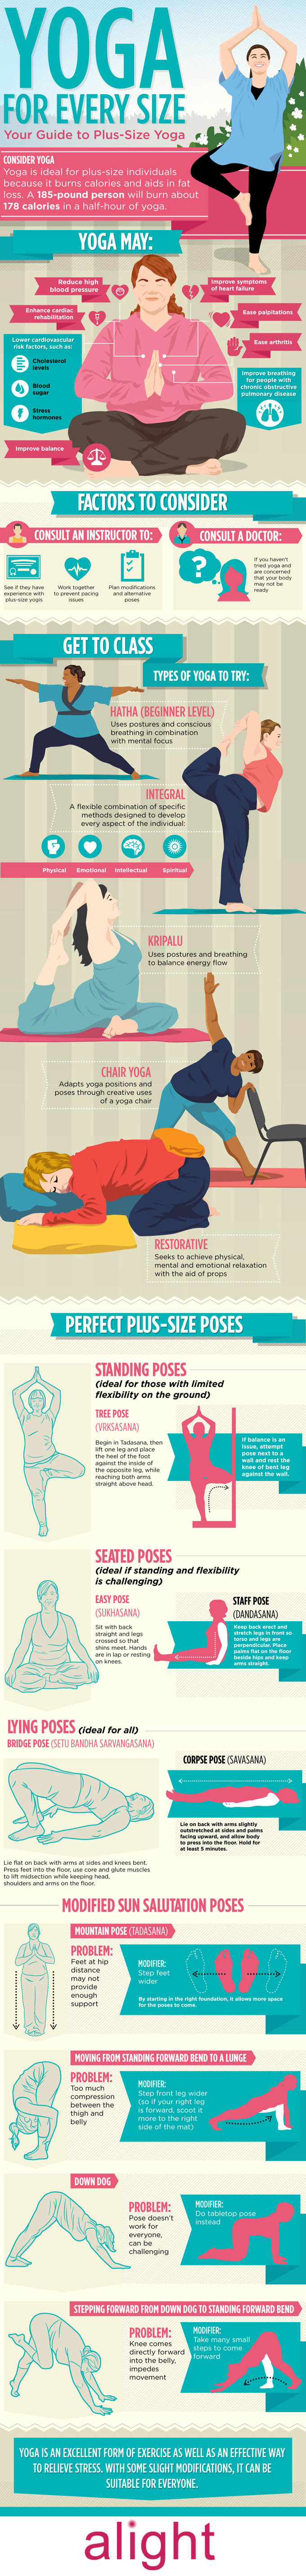 Yoga Tips for Plus-Size People